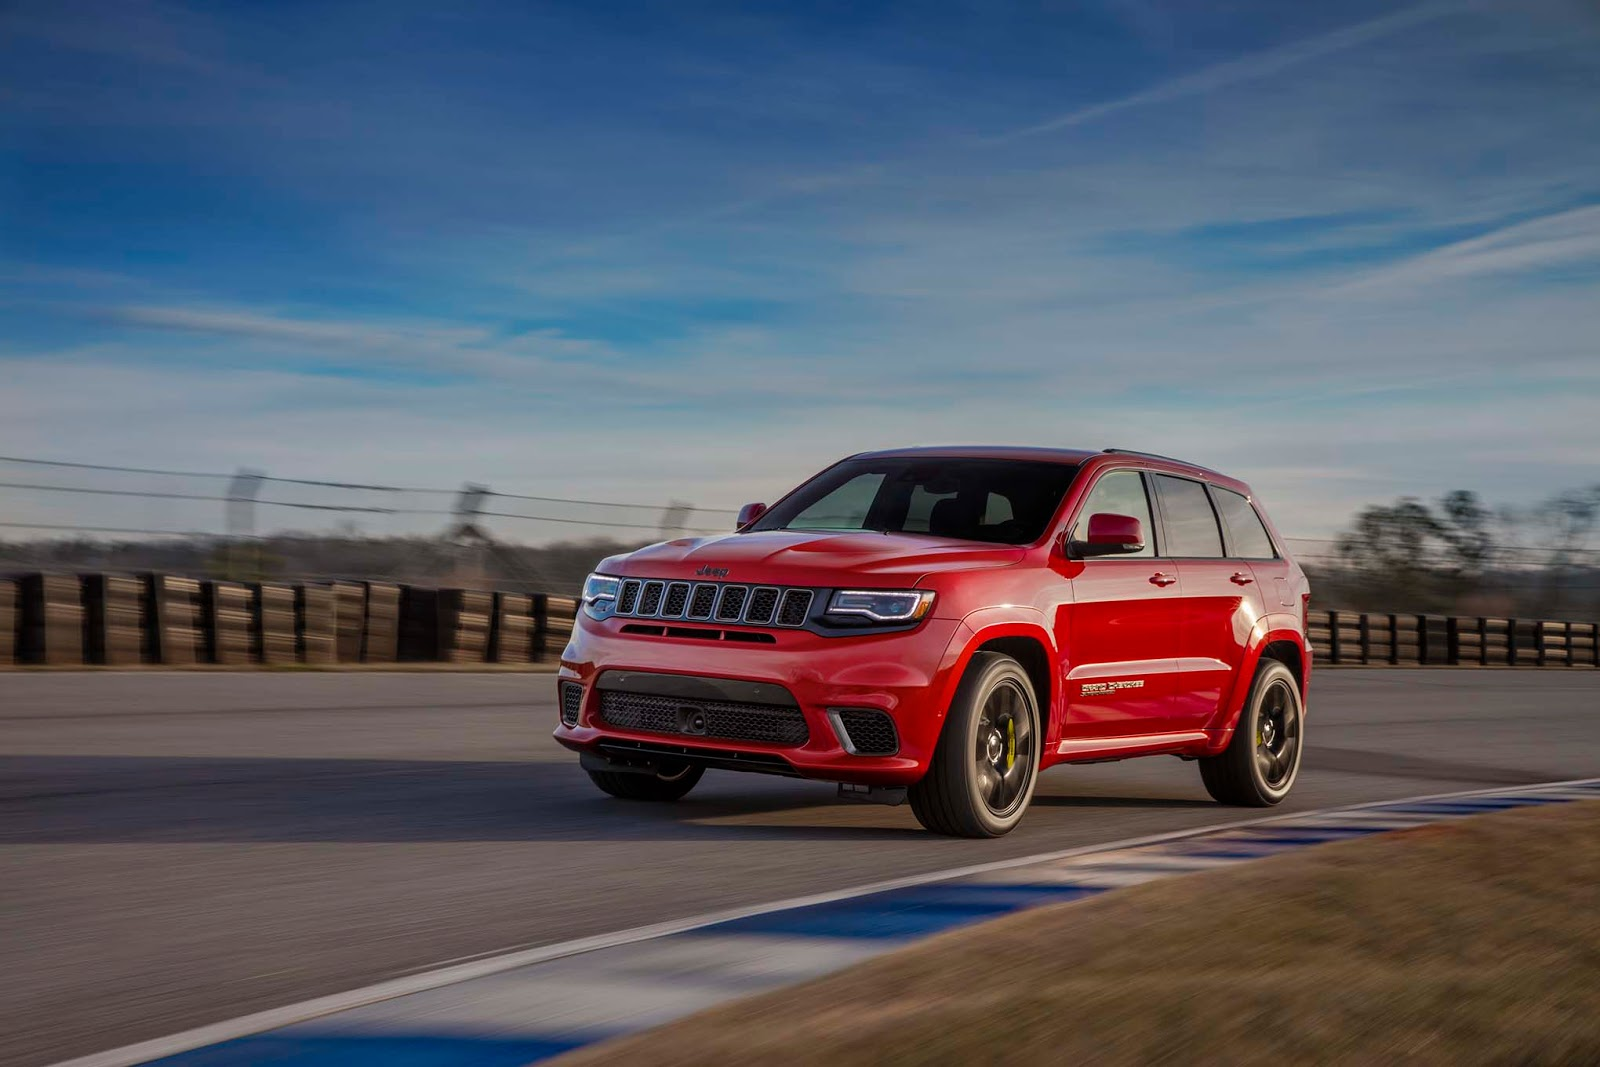 Jeep S 707 Hp Grand Cherokee Trackhawk Gets Rhd To Rock The Uk Carscoops